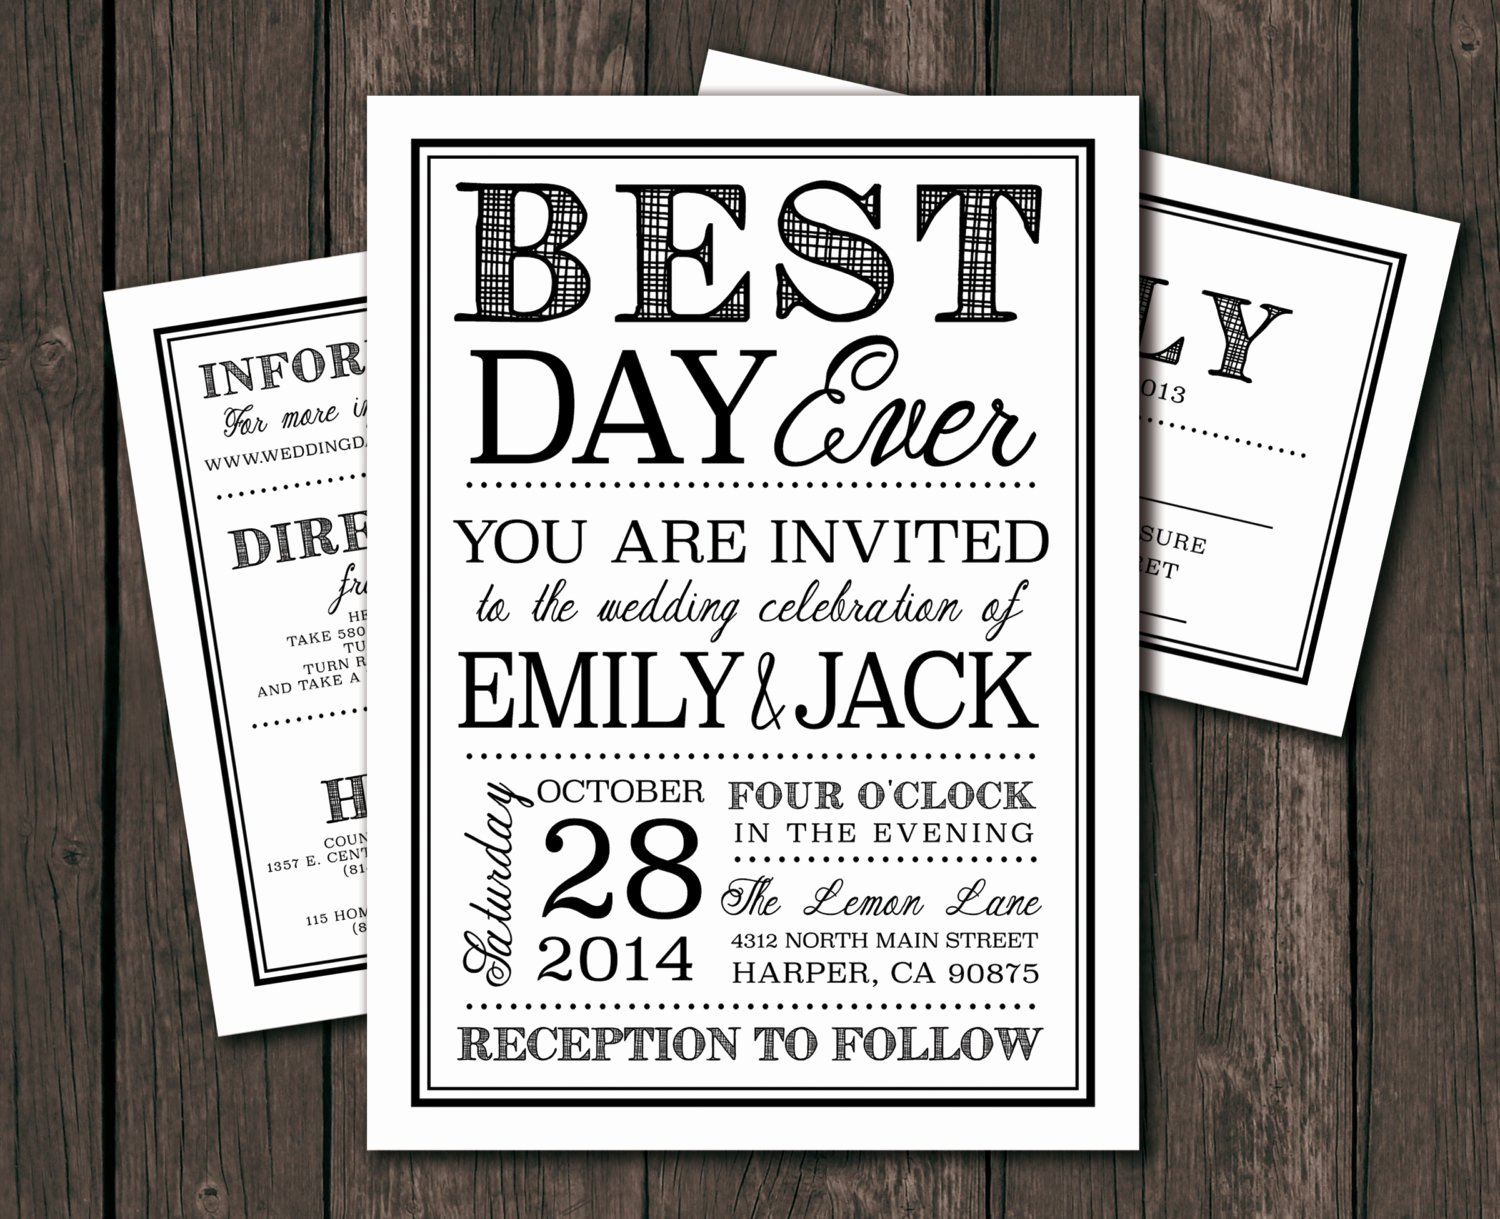 Printable Wedding Invitations Template Unique Printable Wedding Invitation Template Diy Wedding